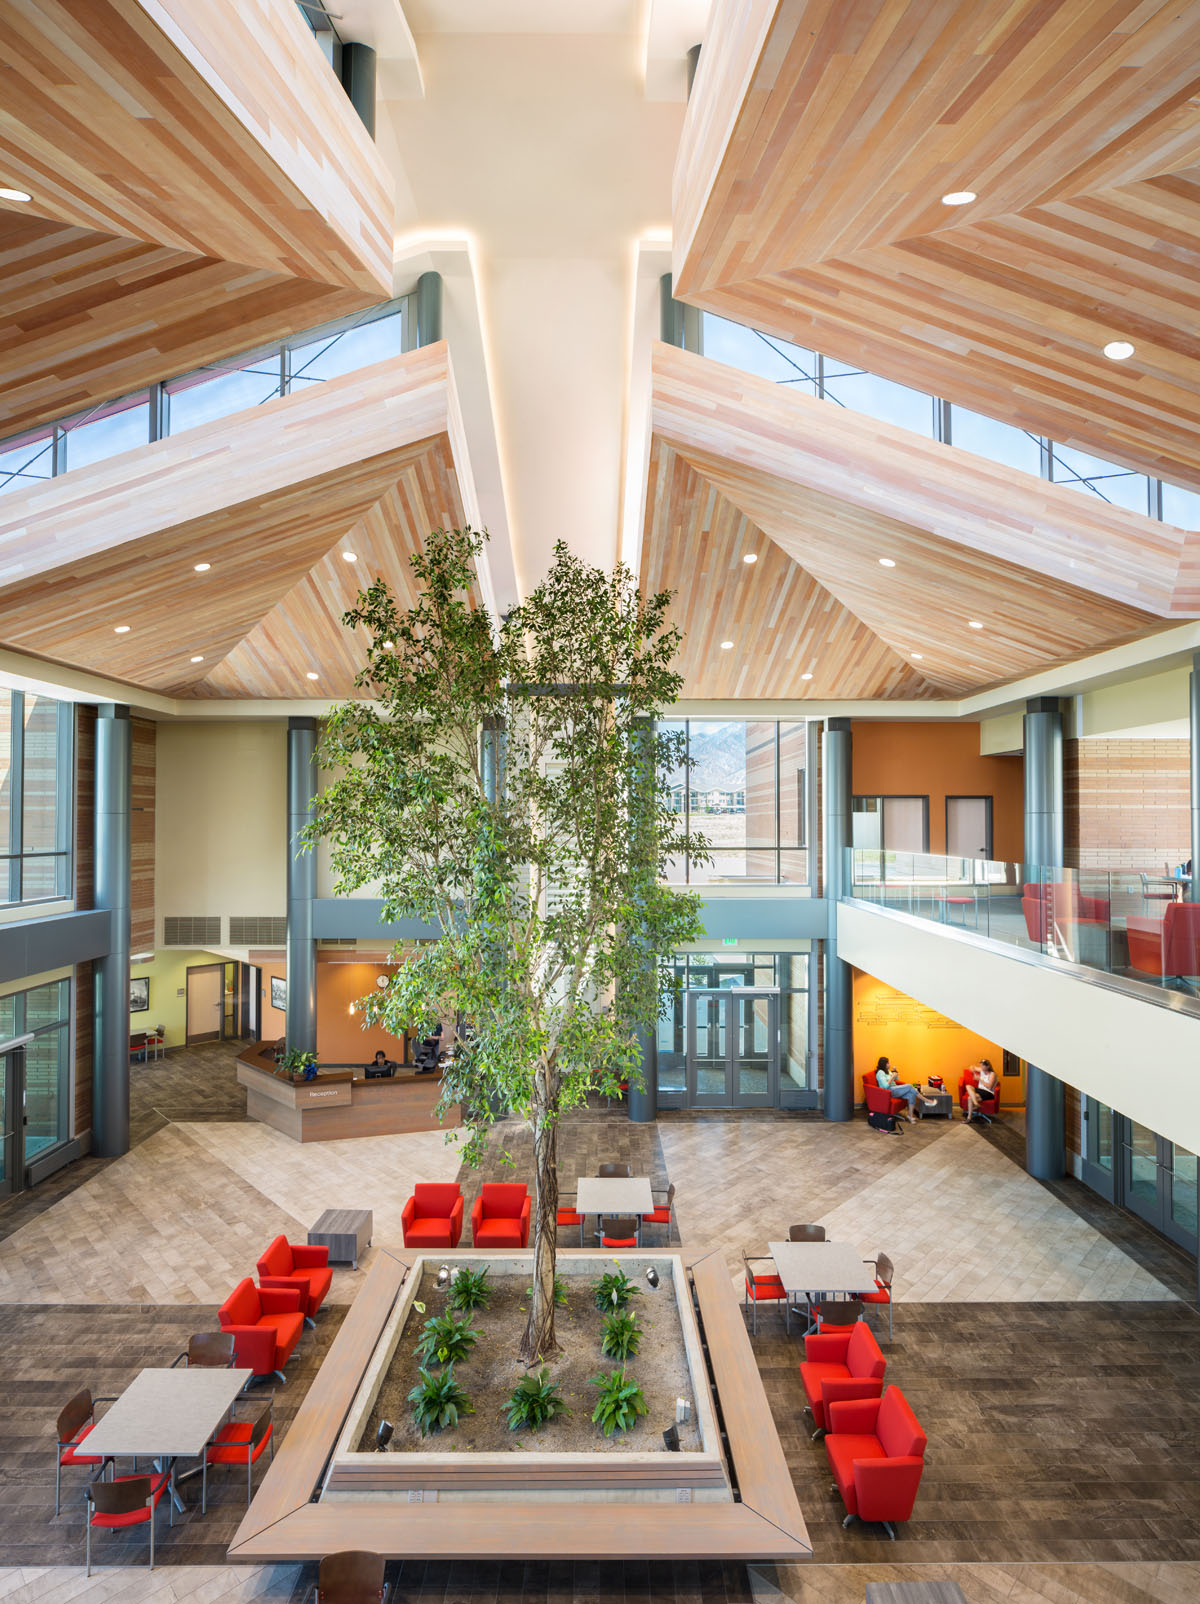 A planted tree stands in the middle of the atrium in the classroom and student services building.